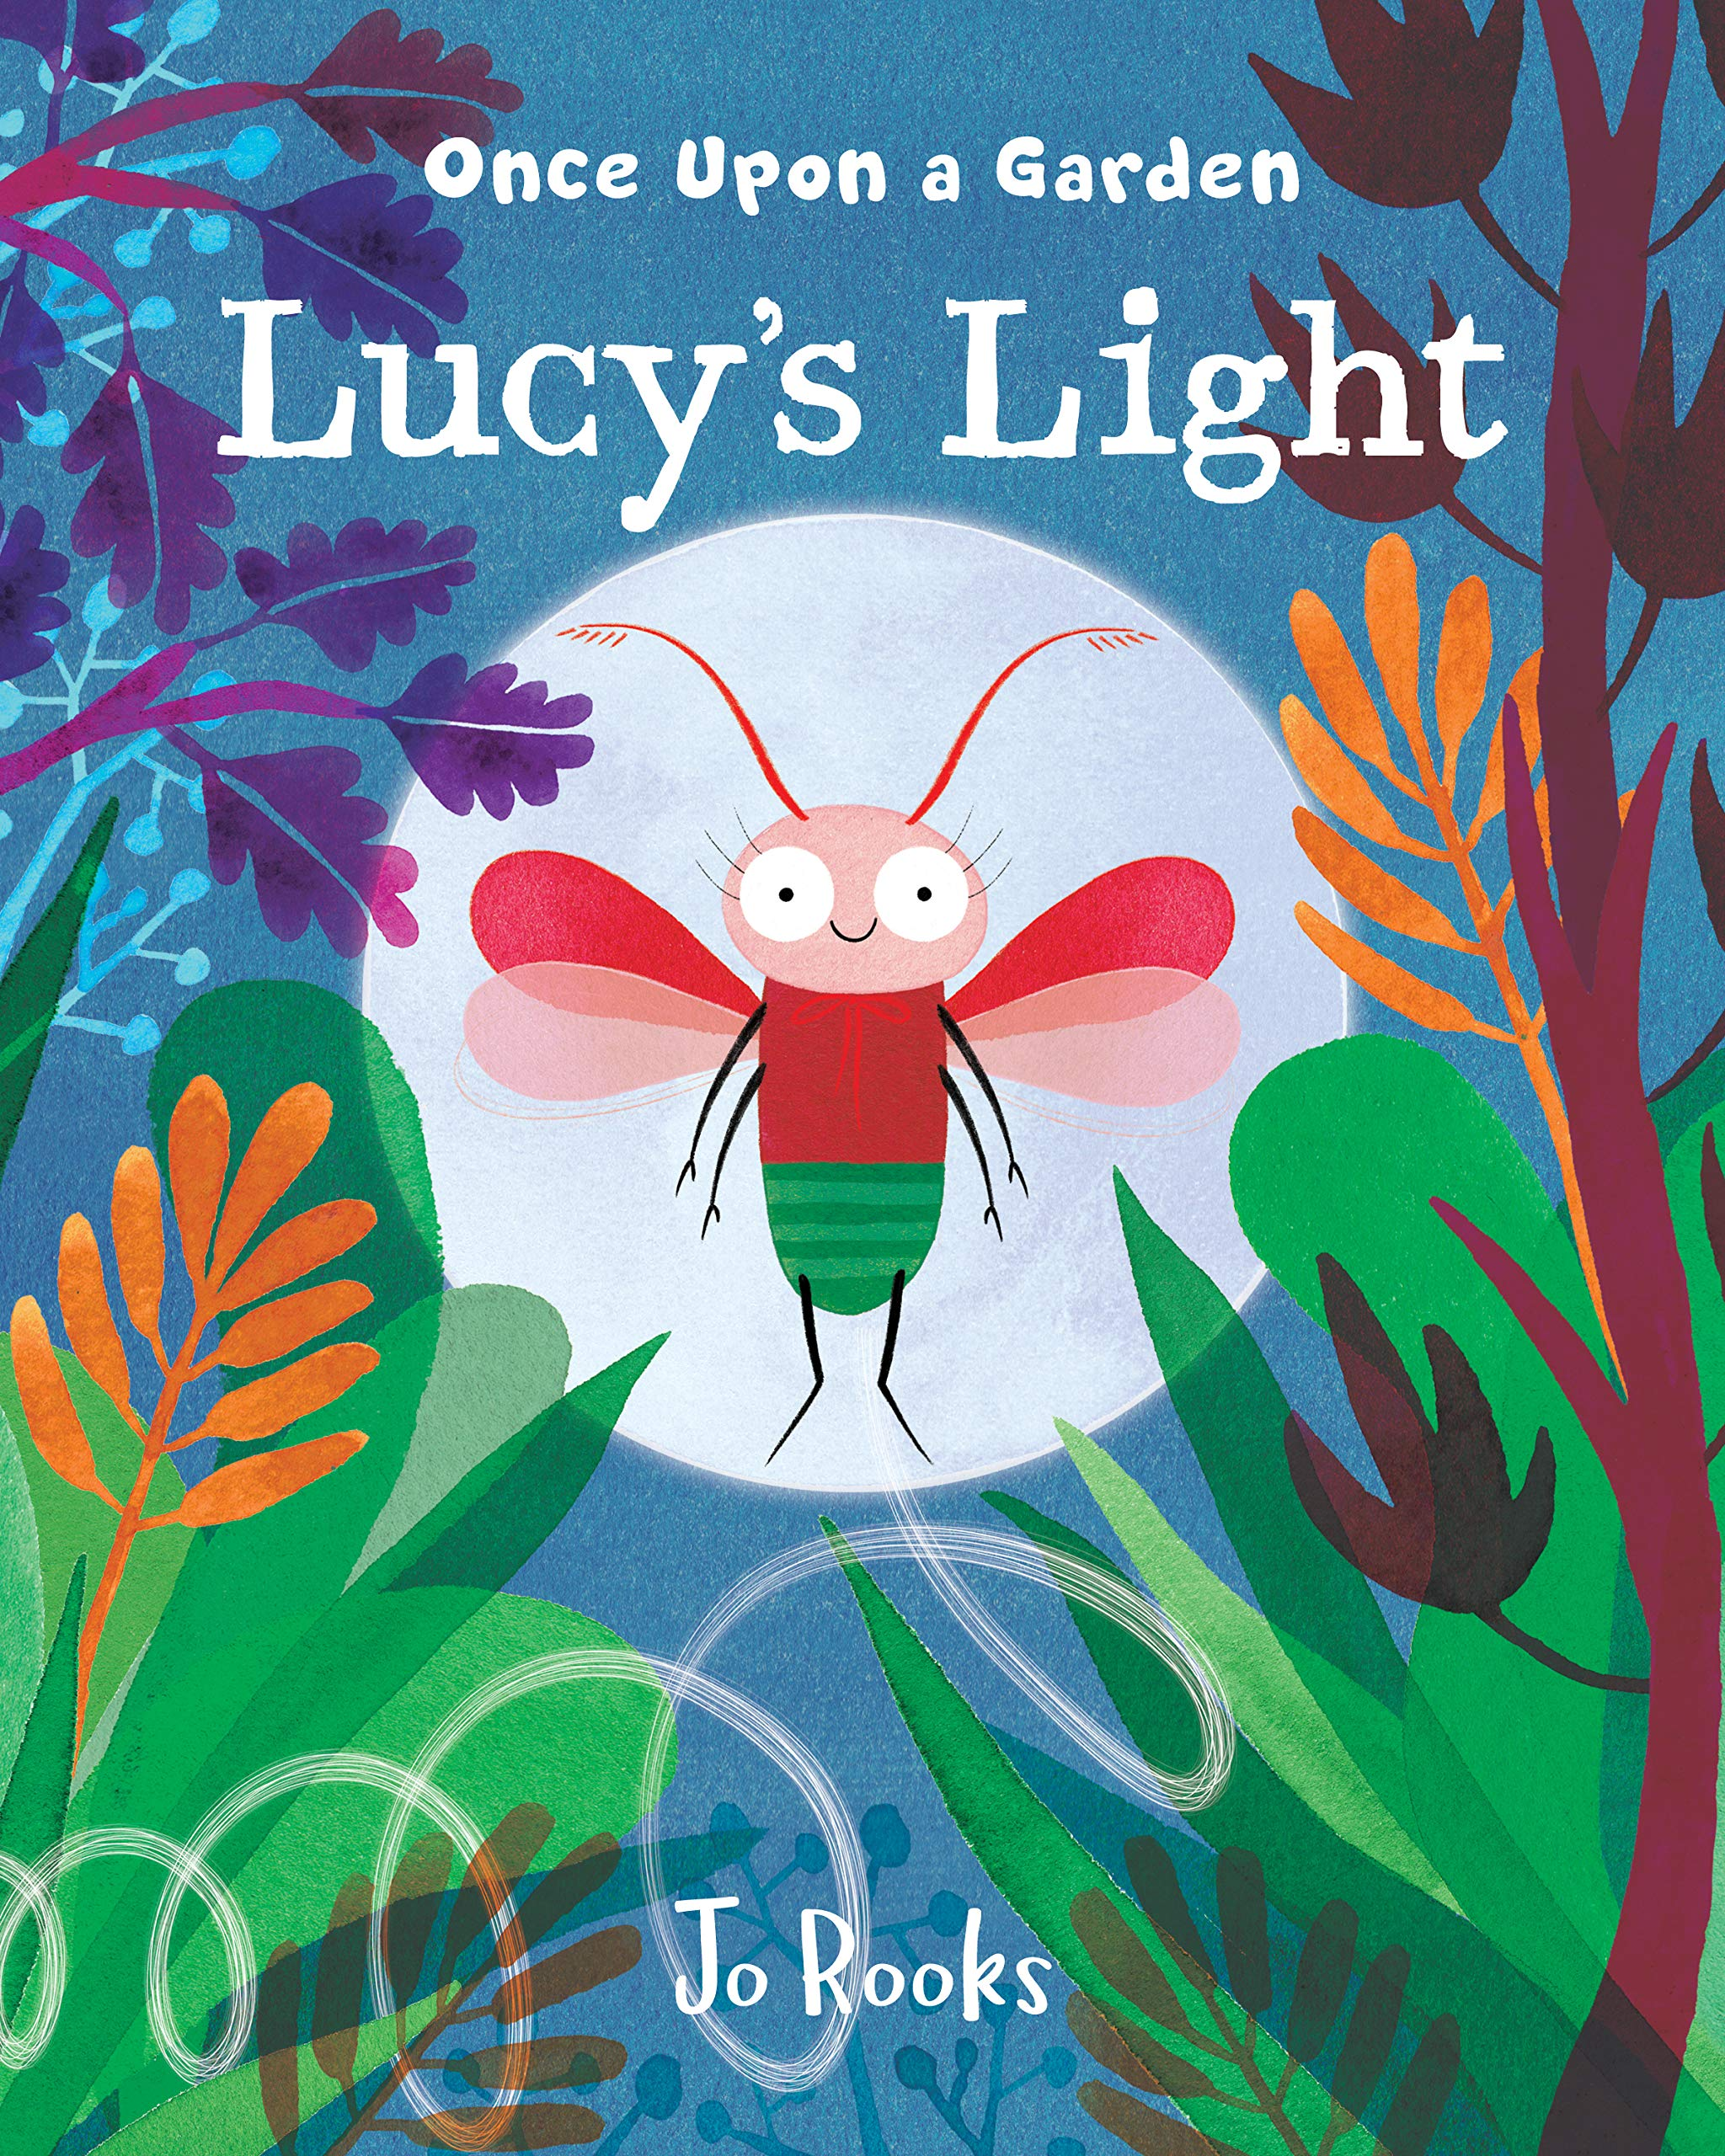 Lucy's Light (Once Upon a Garden)